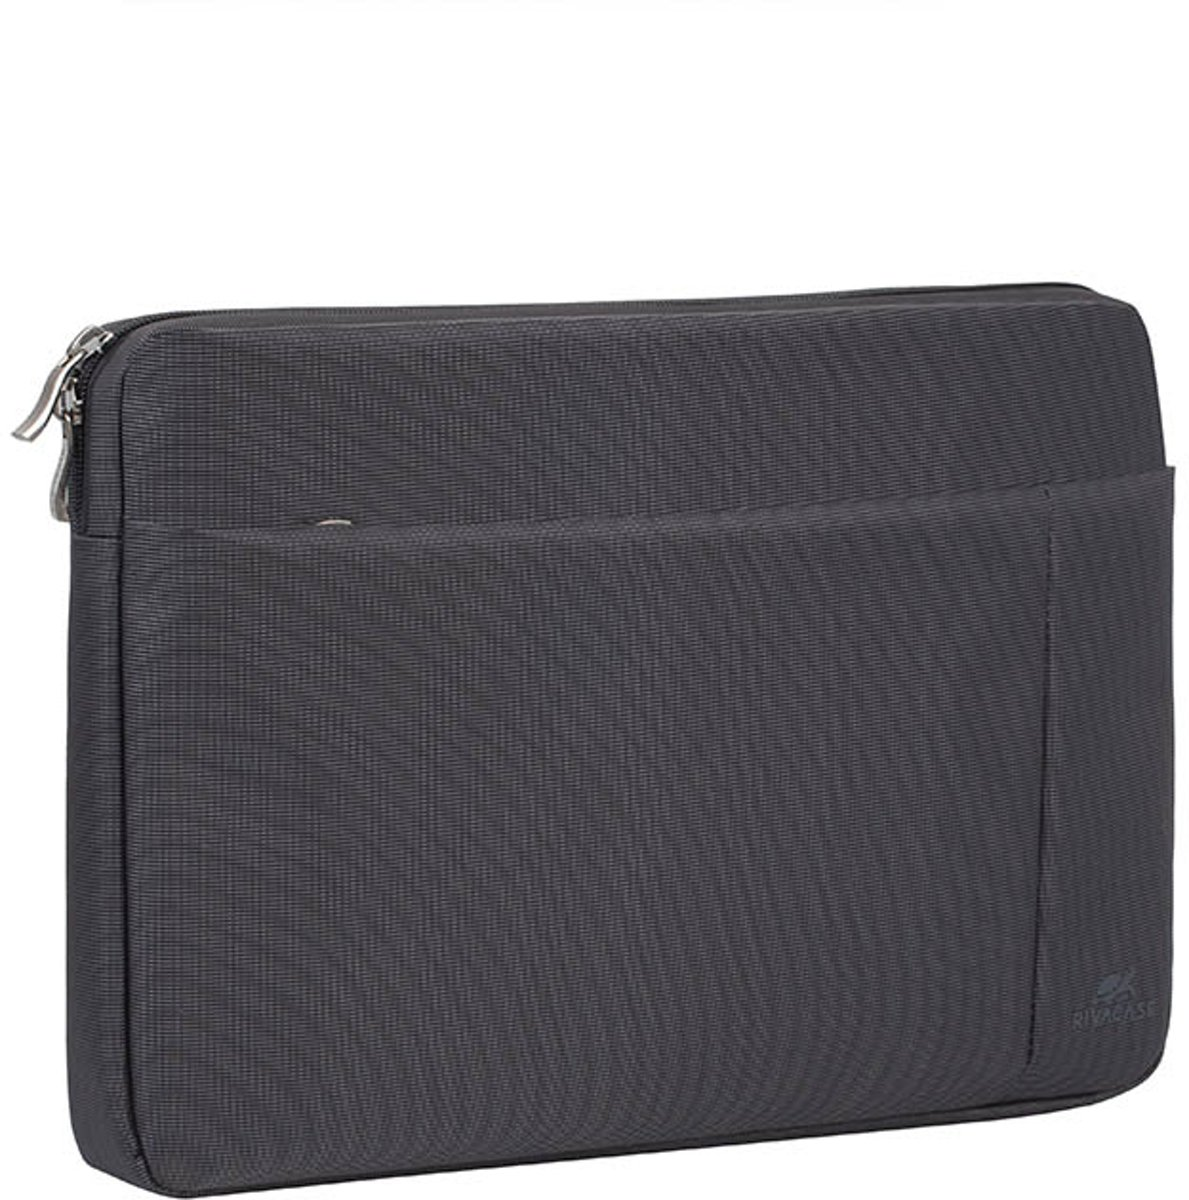 Rivacase Central Laptop Sleeve 13.3 inch Black